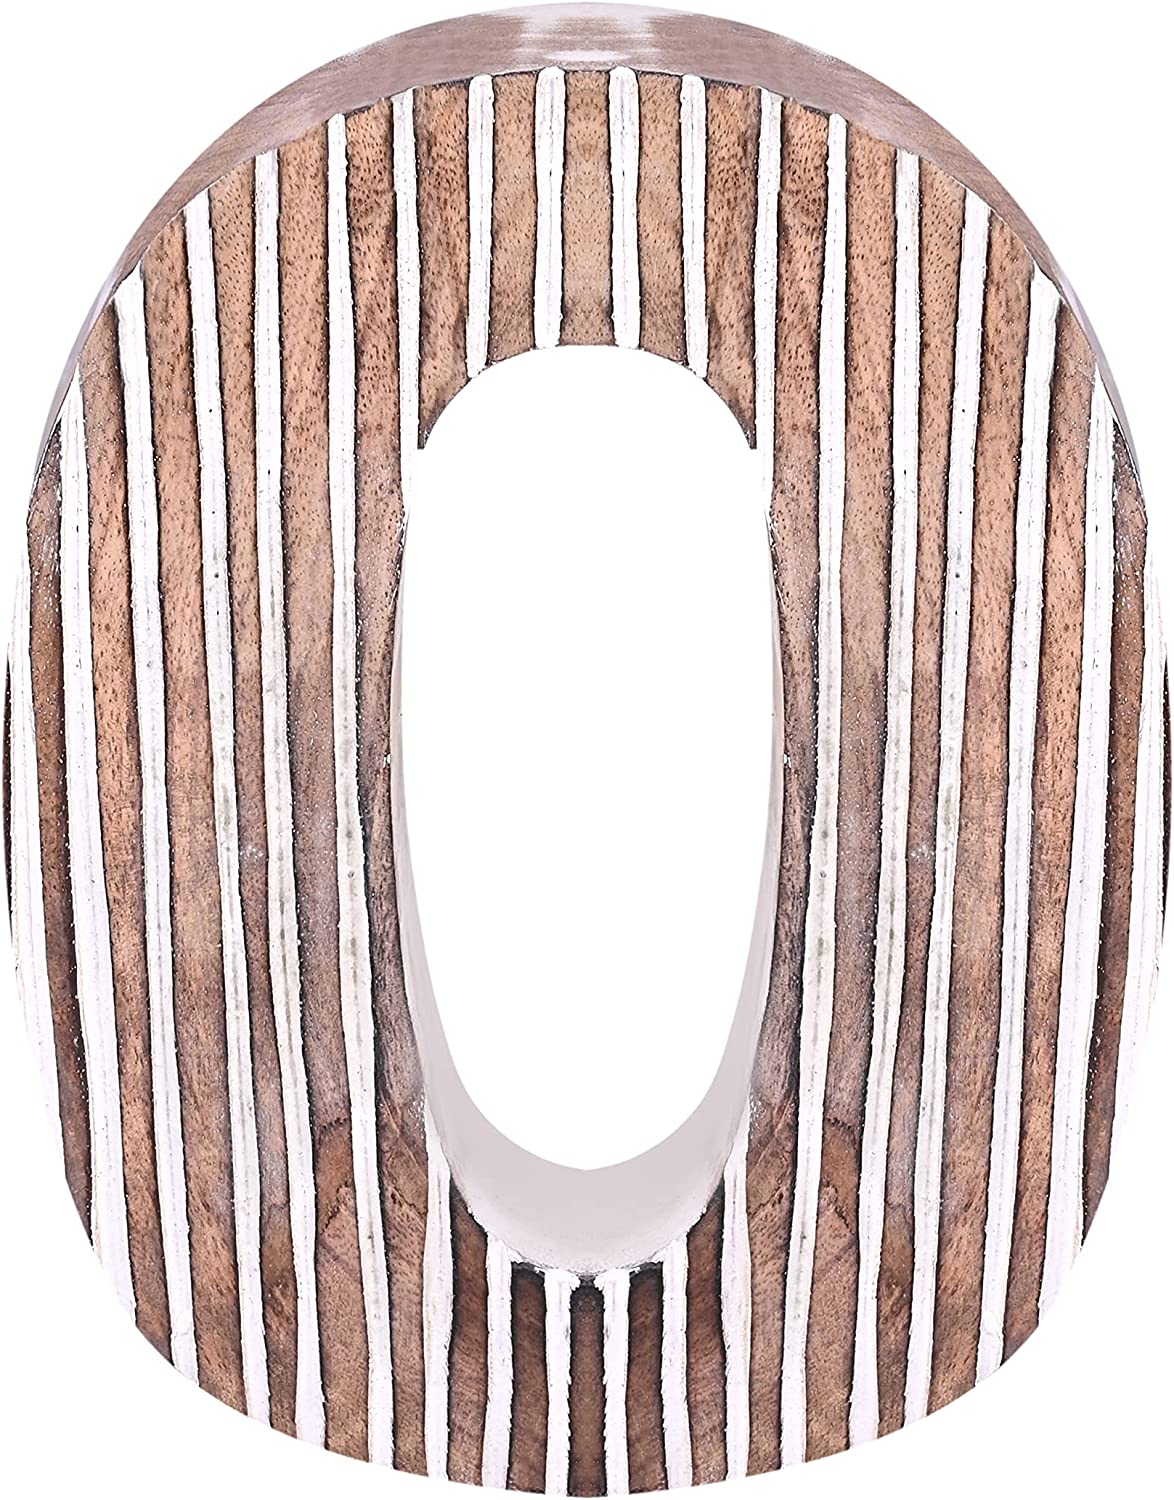 Decorative Wooden Number 0   Standing and Hanging Wooden Number Block for Wall Decor   Shabby Chic Wood Number Letter for Wall Table   Marquee Number Sign for Home Bedroom Birthday Housewarming Party